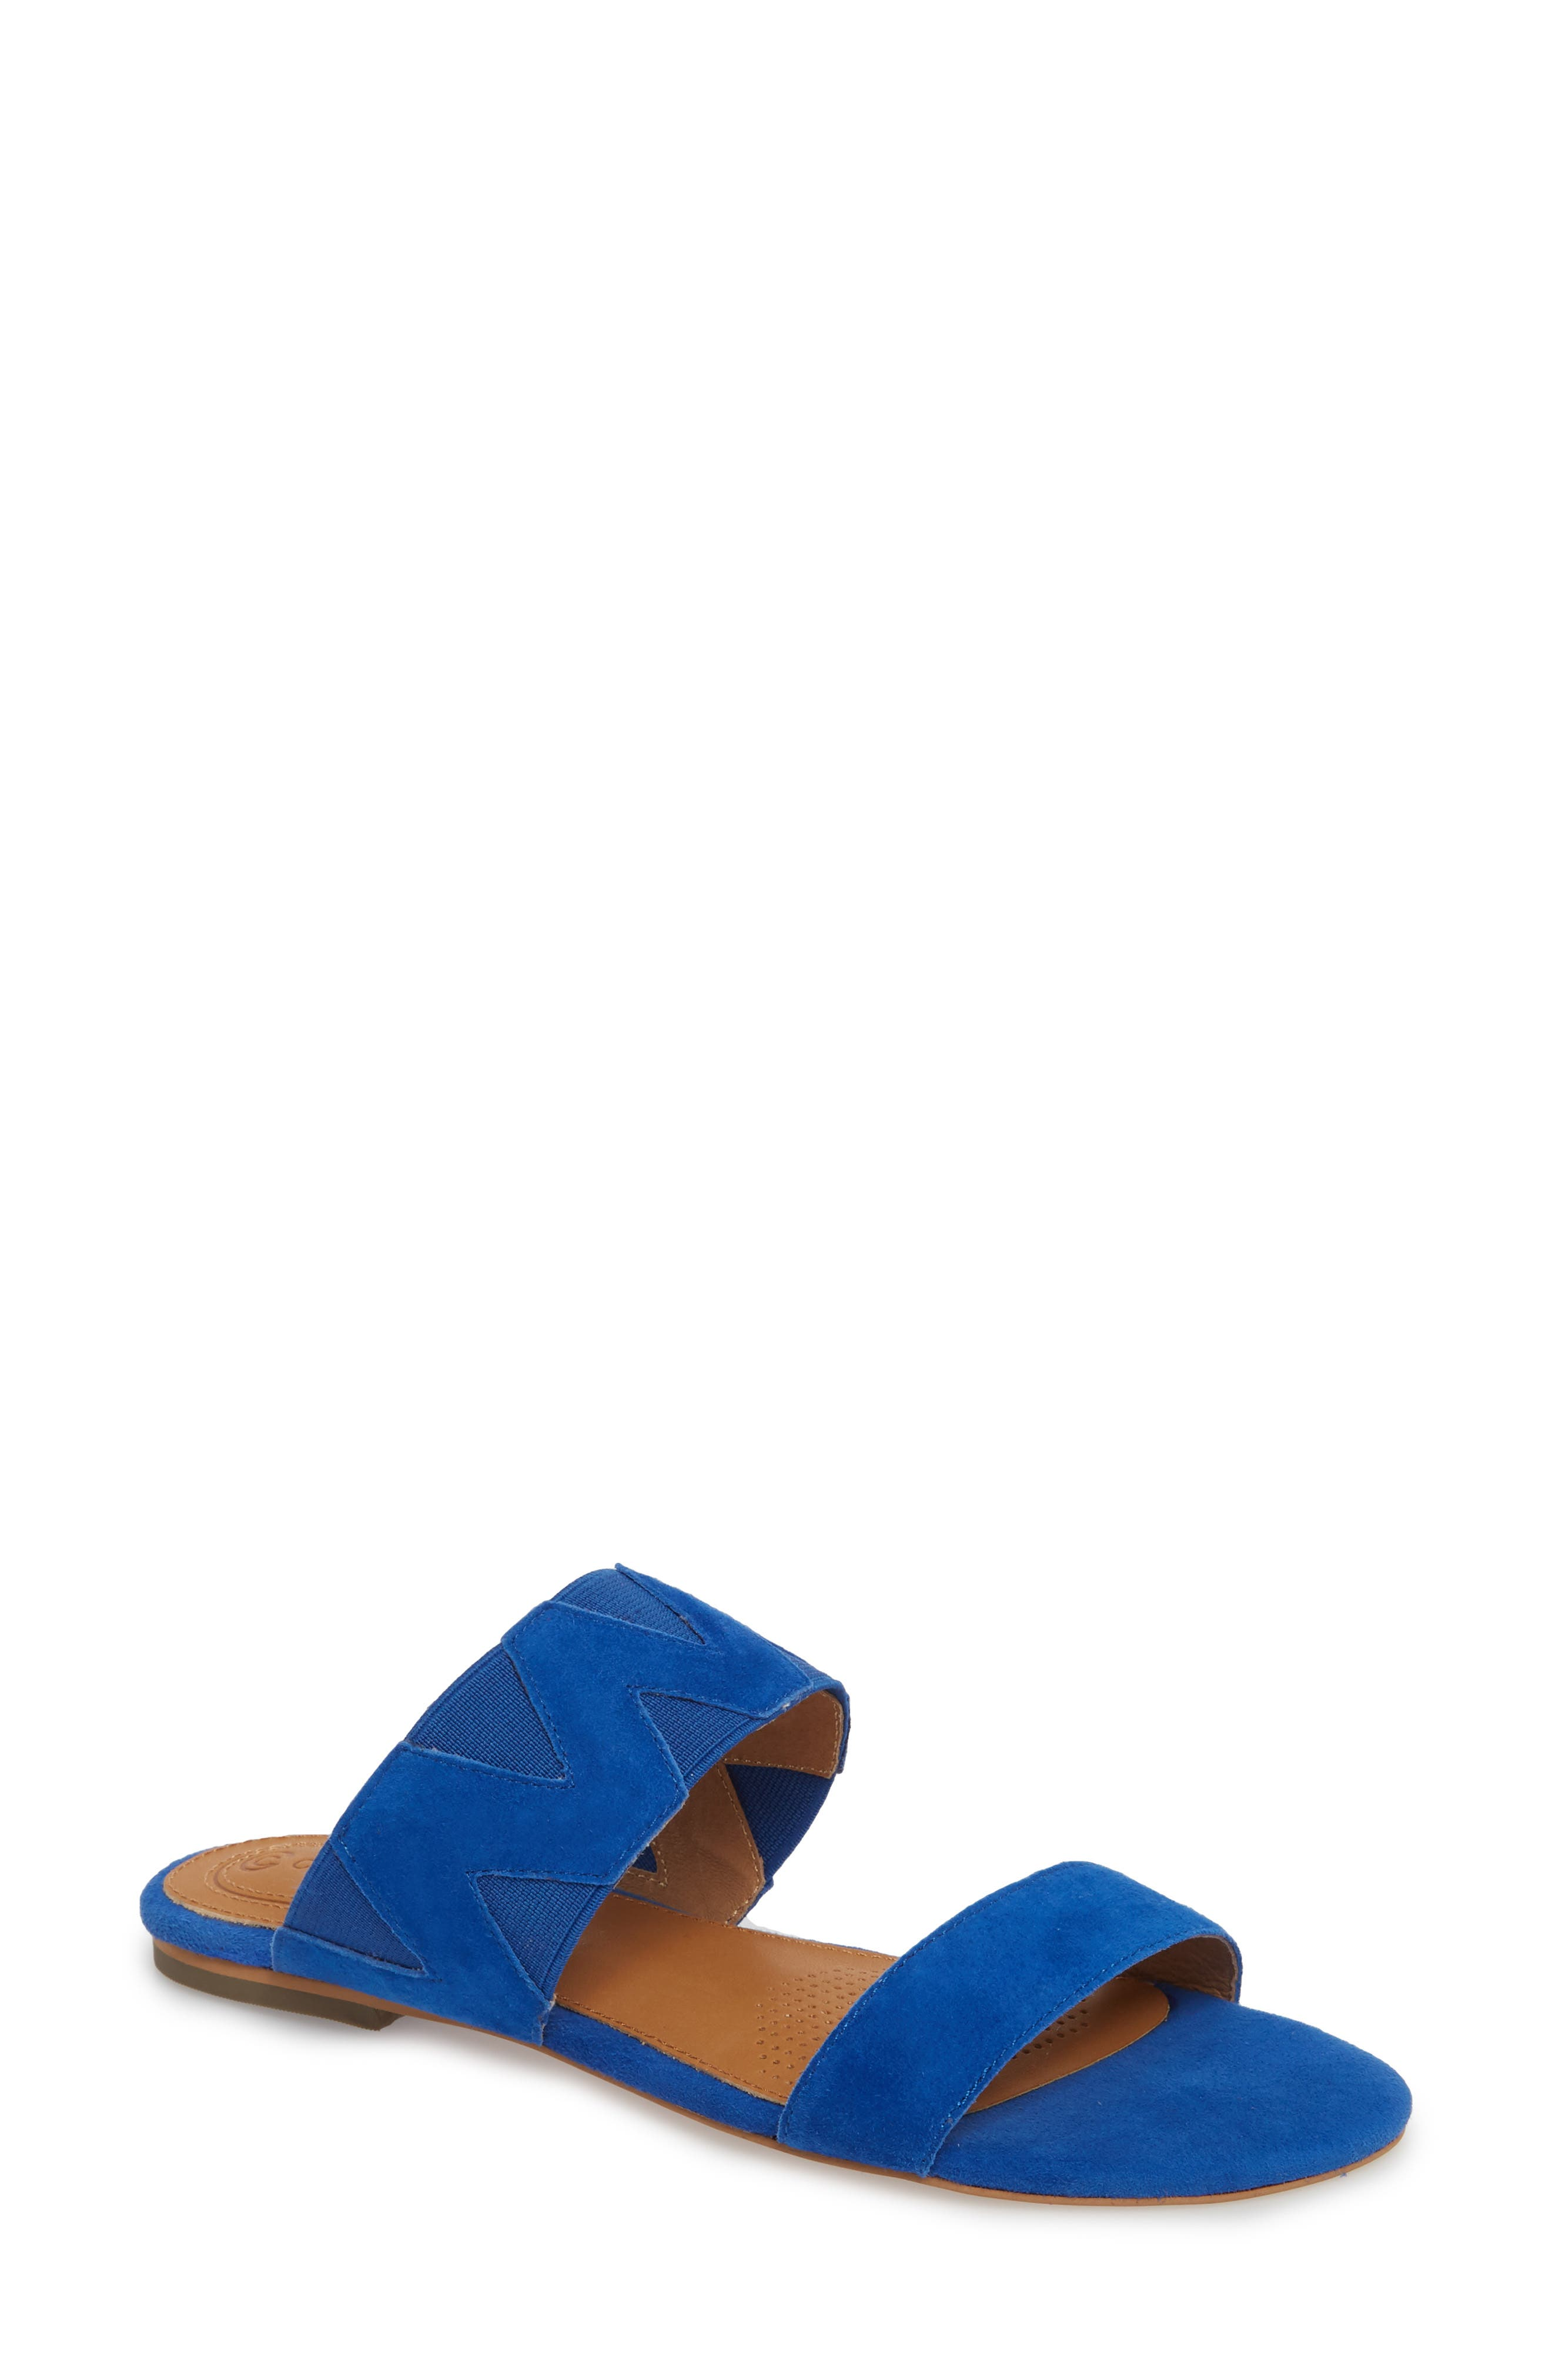 Vickee Double Band Sandal,                         Main,                         color, Royal Blue Leather